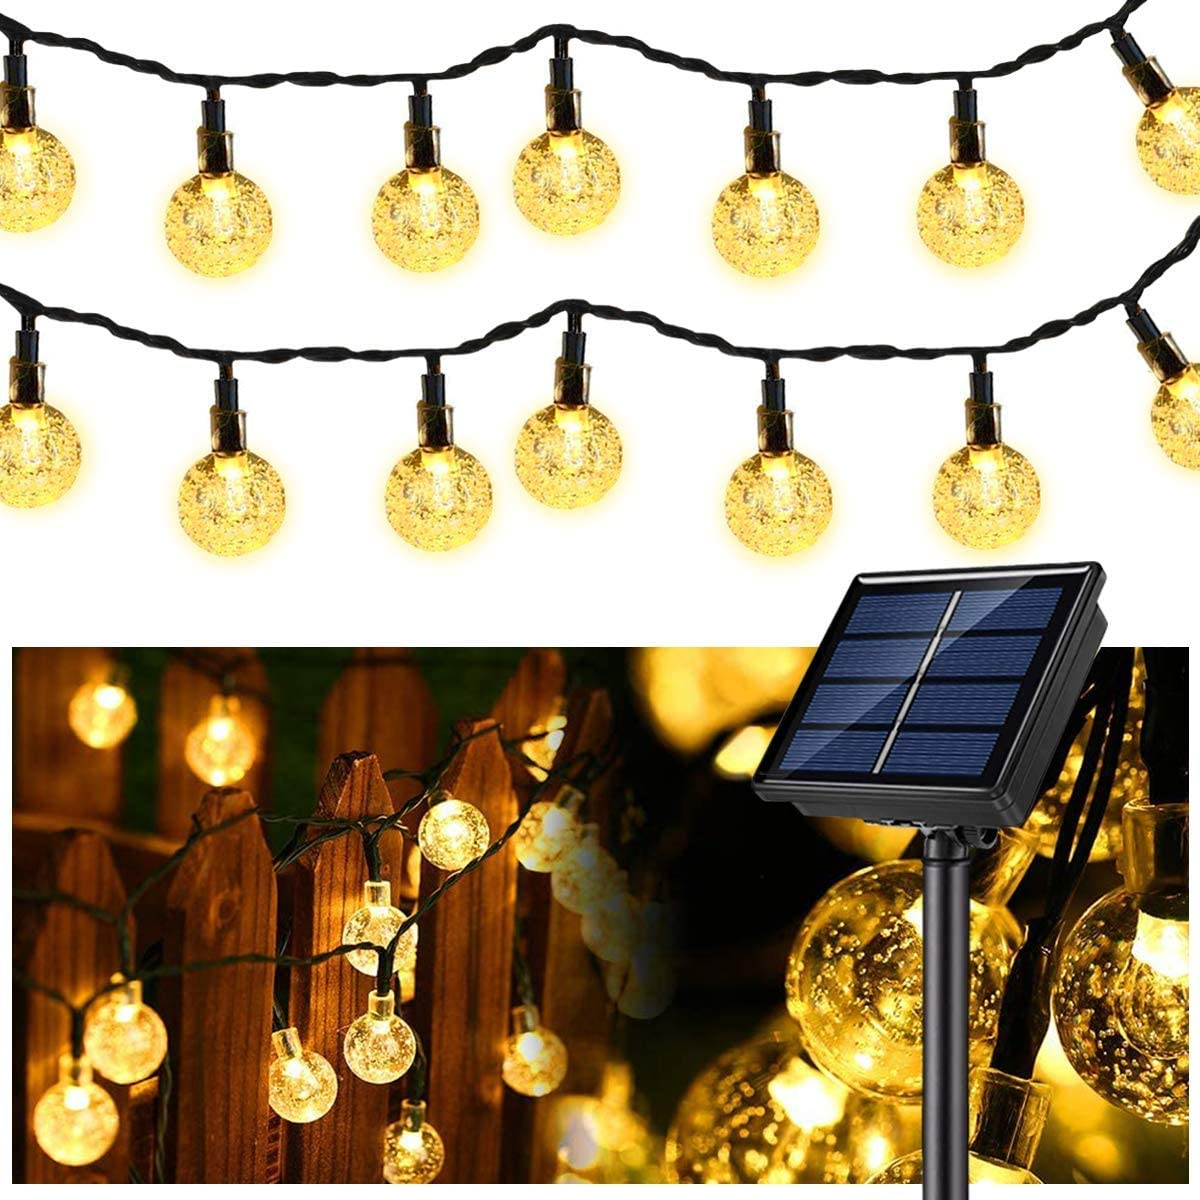 Globe String Lights, 37 FT 60 Solar Globe String Lights,(Upgraded Battery)Waterproof 8 Modes Powered String Lights for Patio,Umbrella,Pergola,Garden,Gazebo,Outdoors(Warm White)